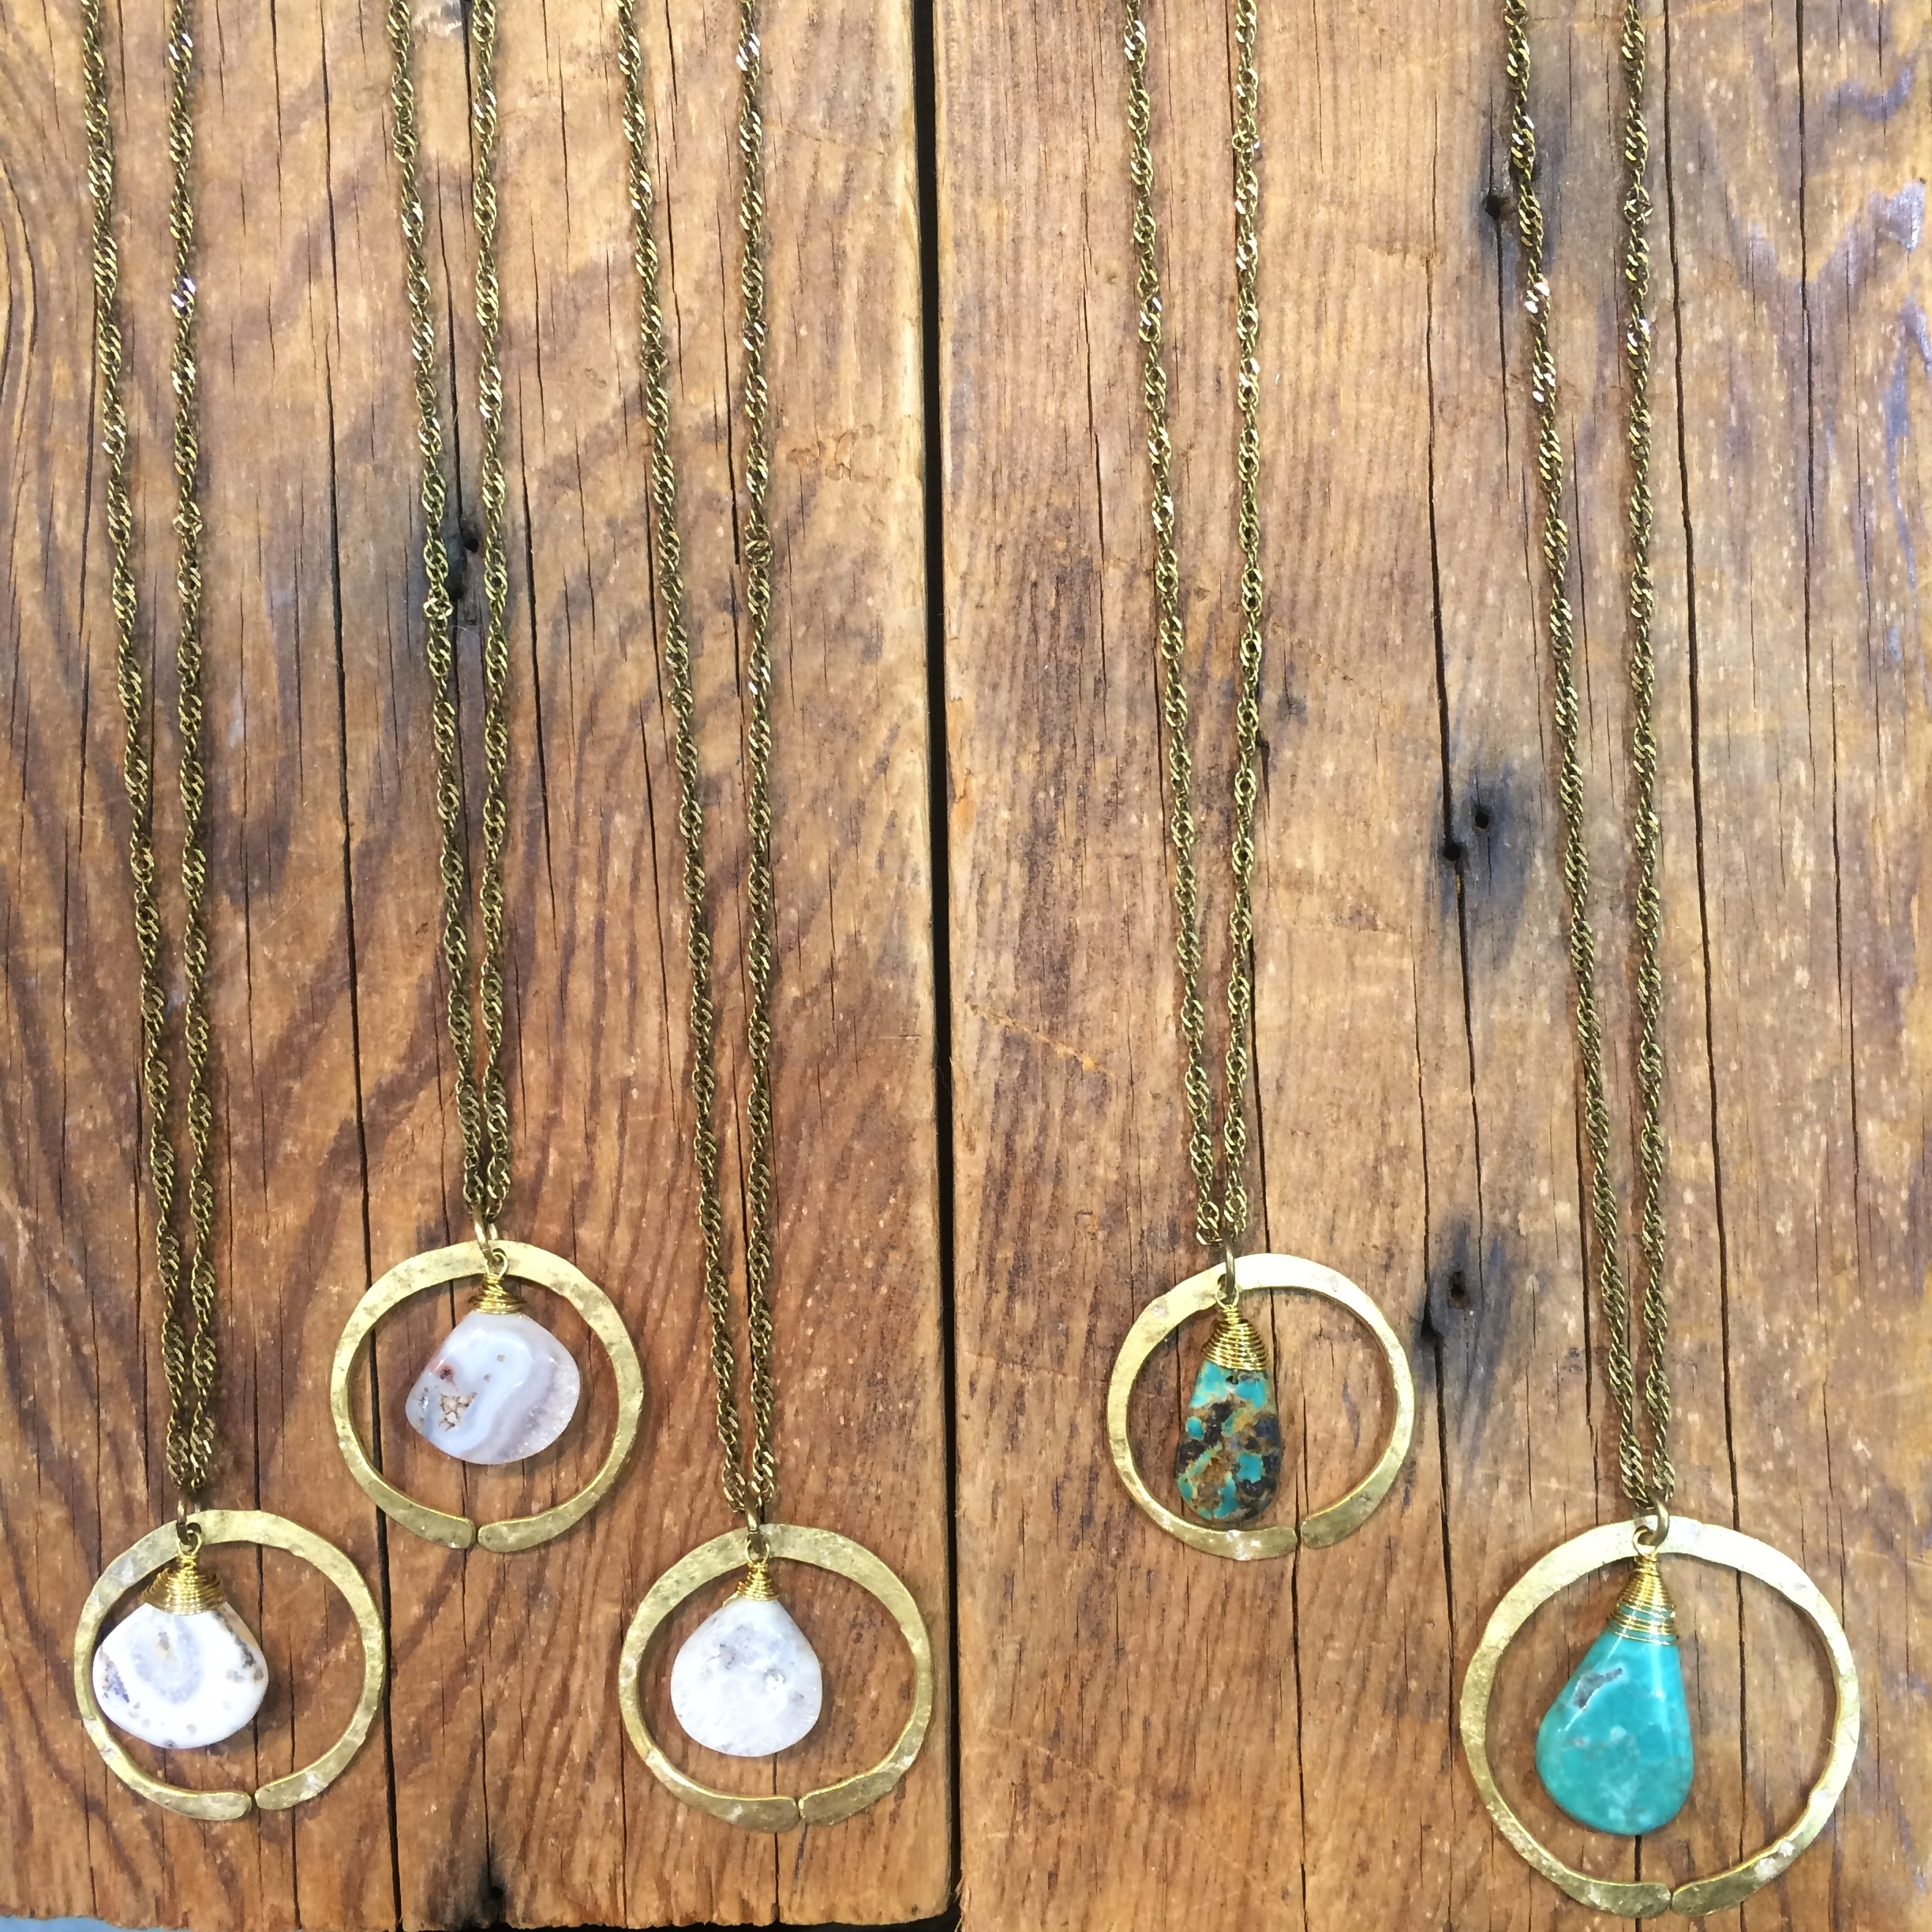 Turquoise and Moss Agate Redwoods Necklaces